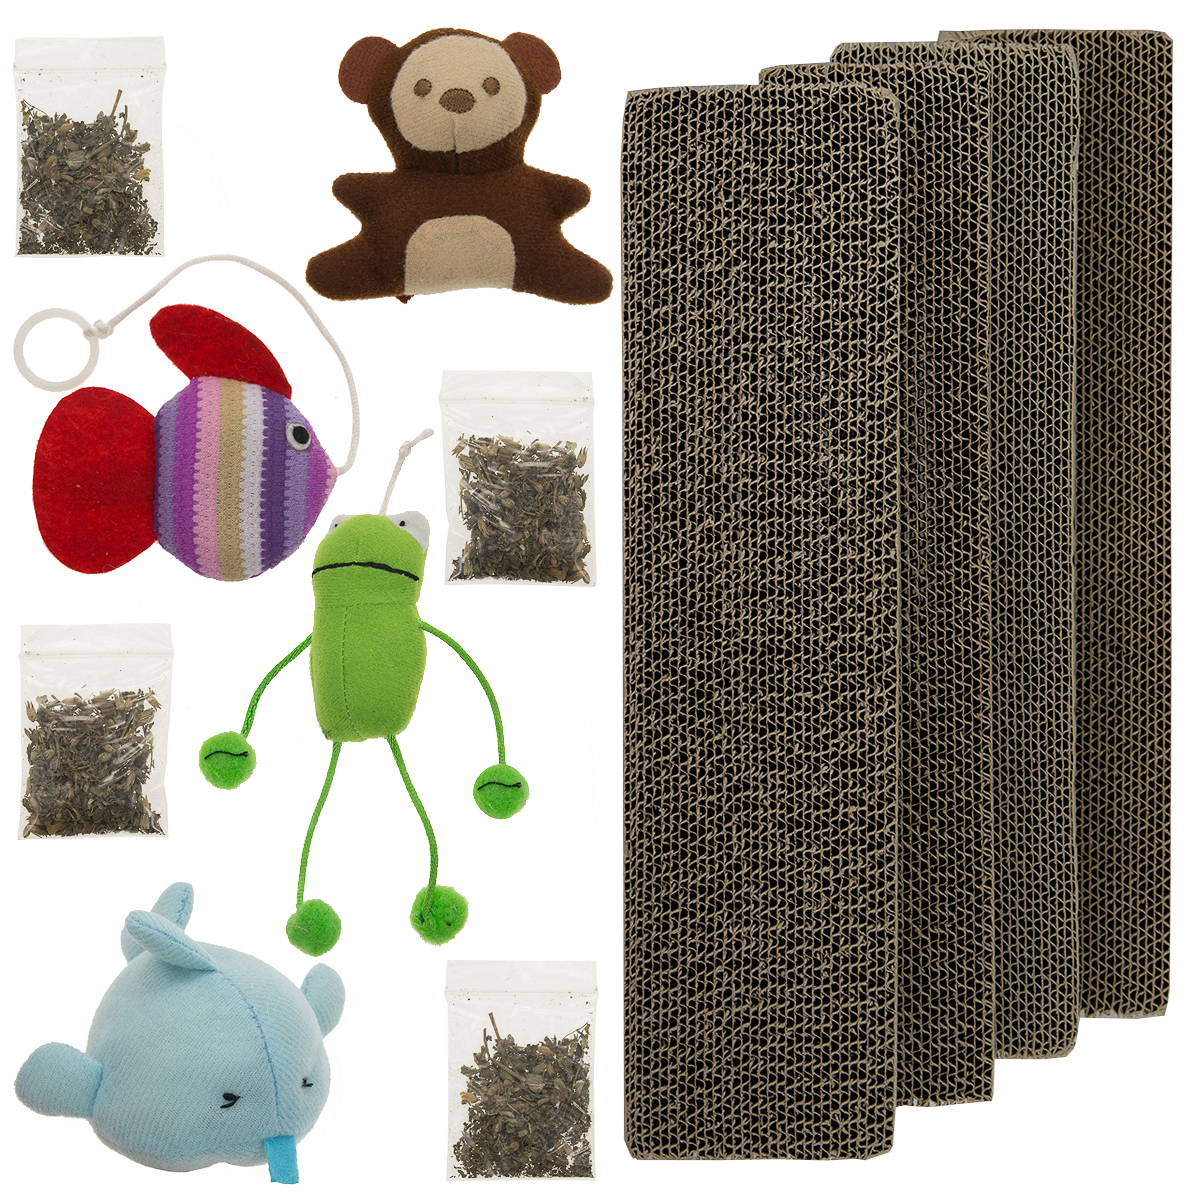 4 Master Paws Corrugated Cardboard Cat Scratching Post Refill Pads With Catnip & Set of Toys by